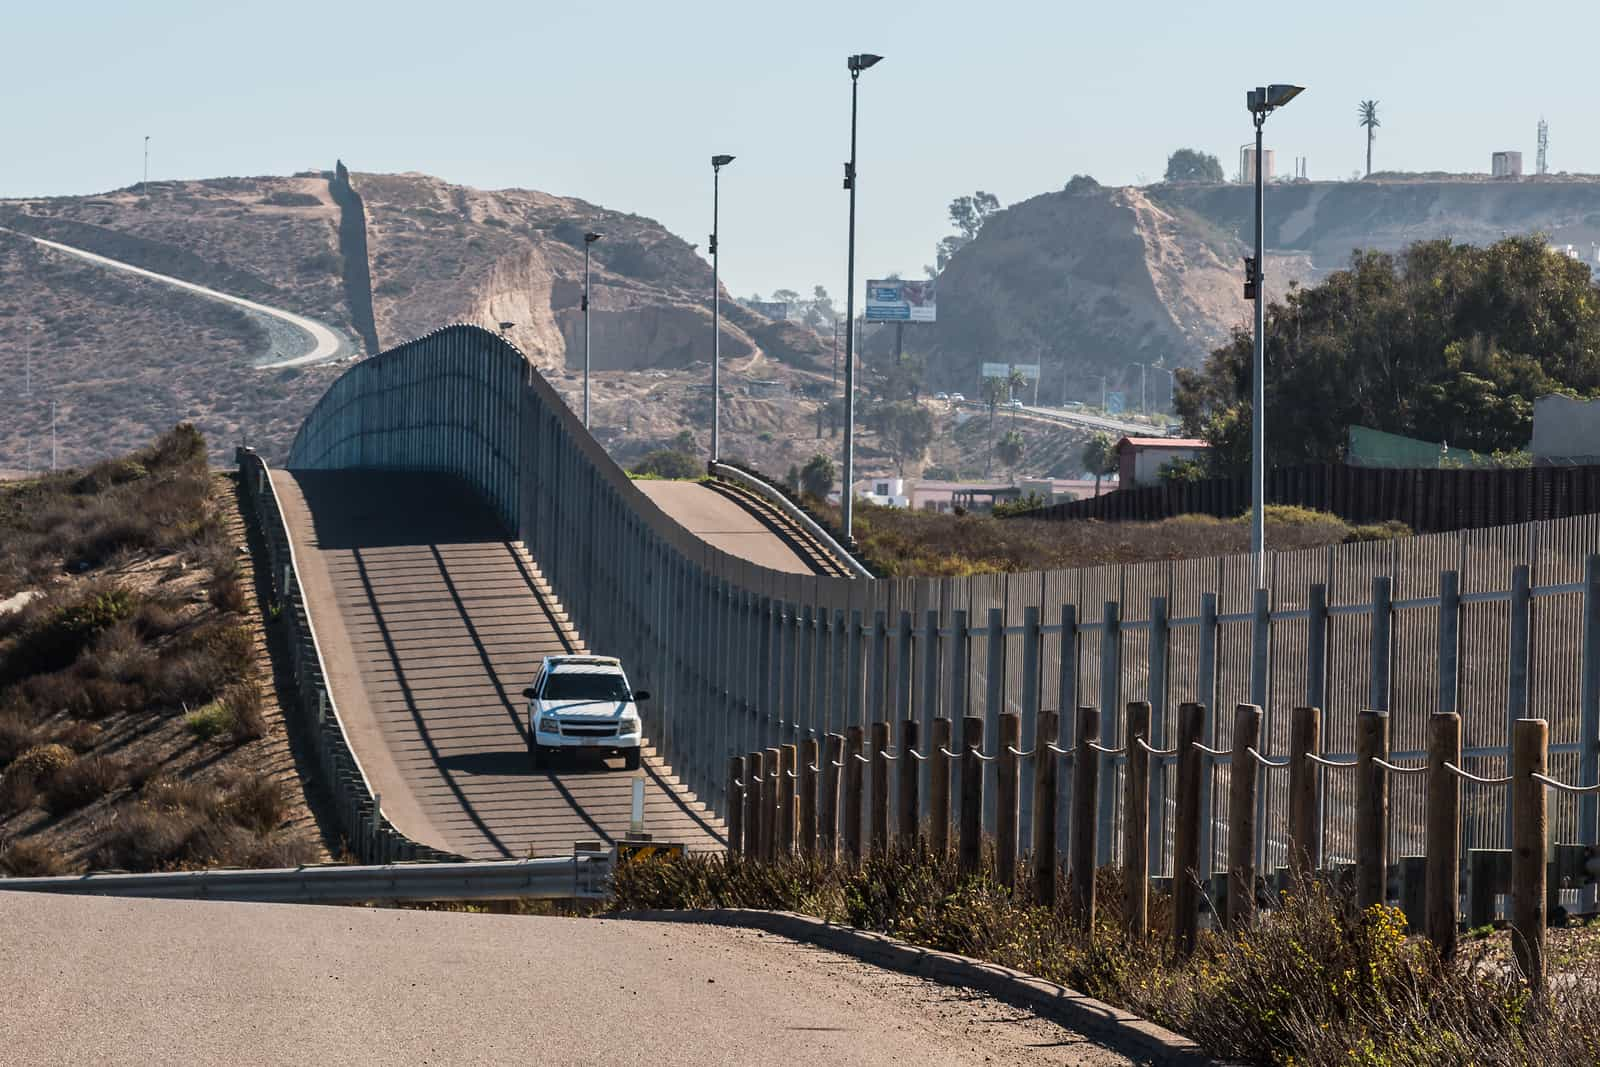 California Political News – Attorney General Becerra, California Remains Vigorously Opposed to Trump's Border Wall